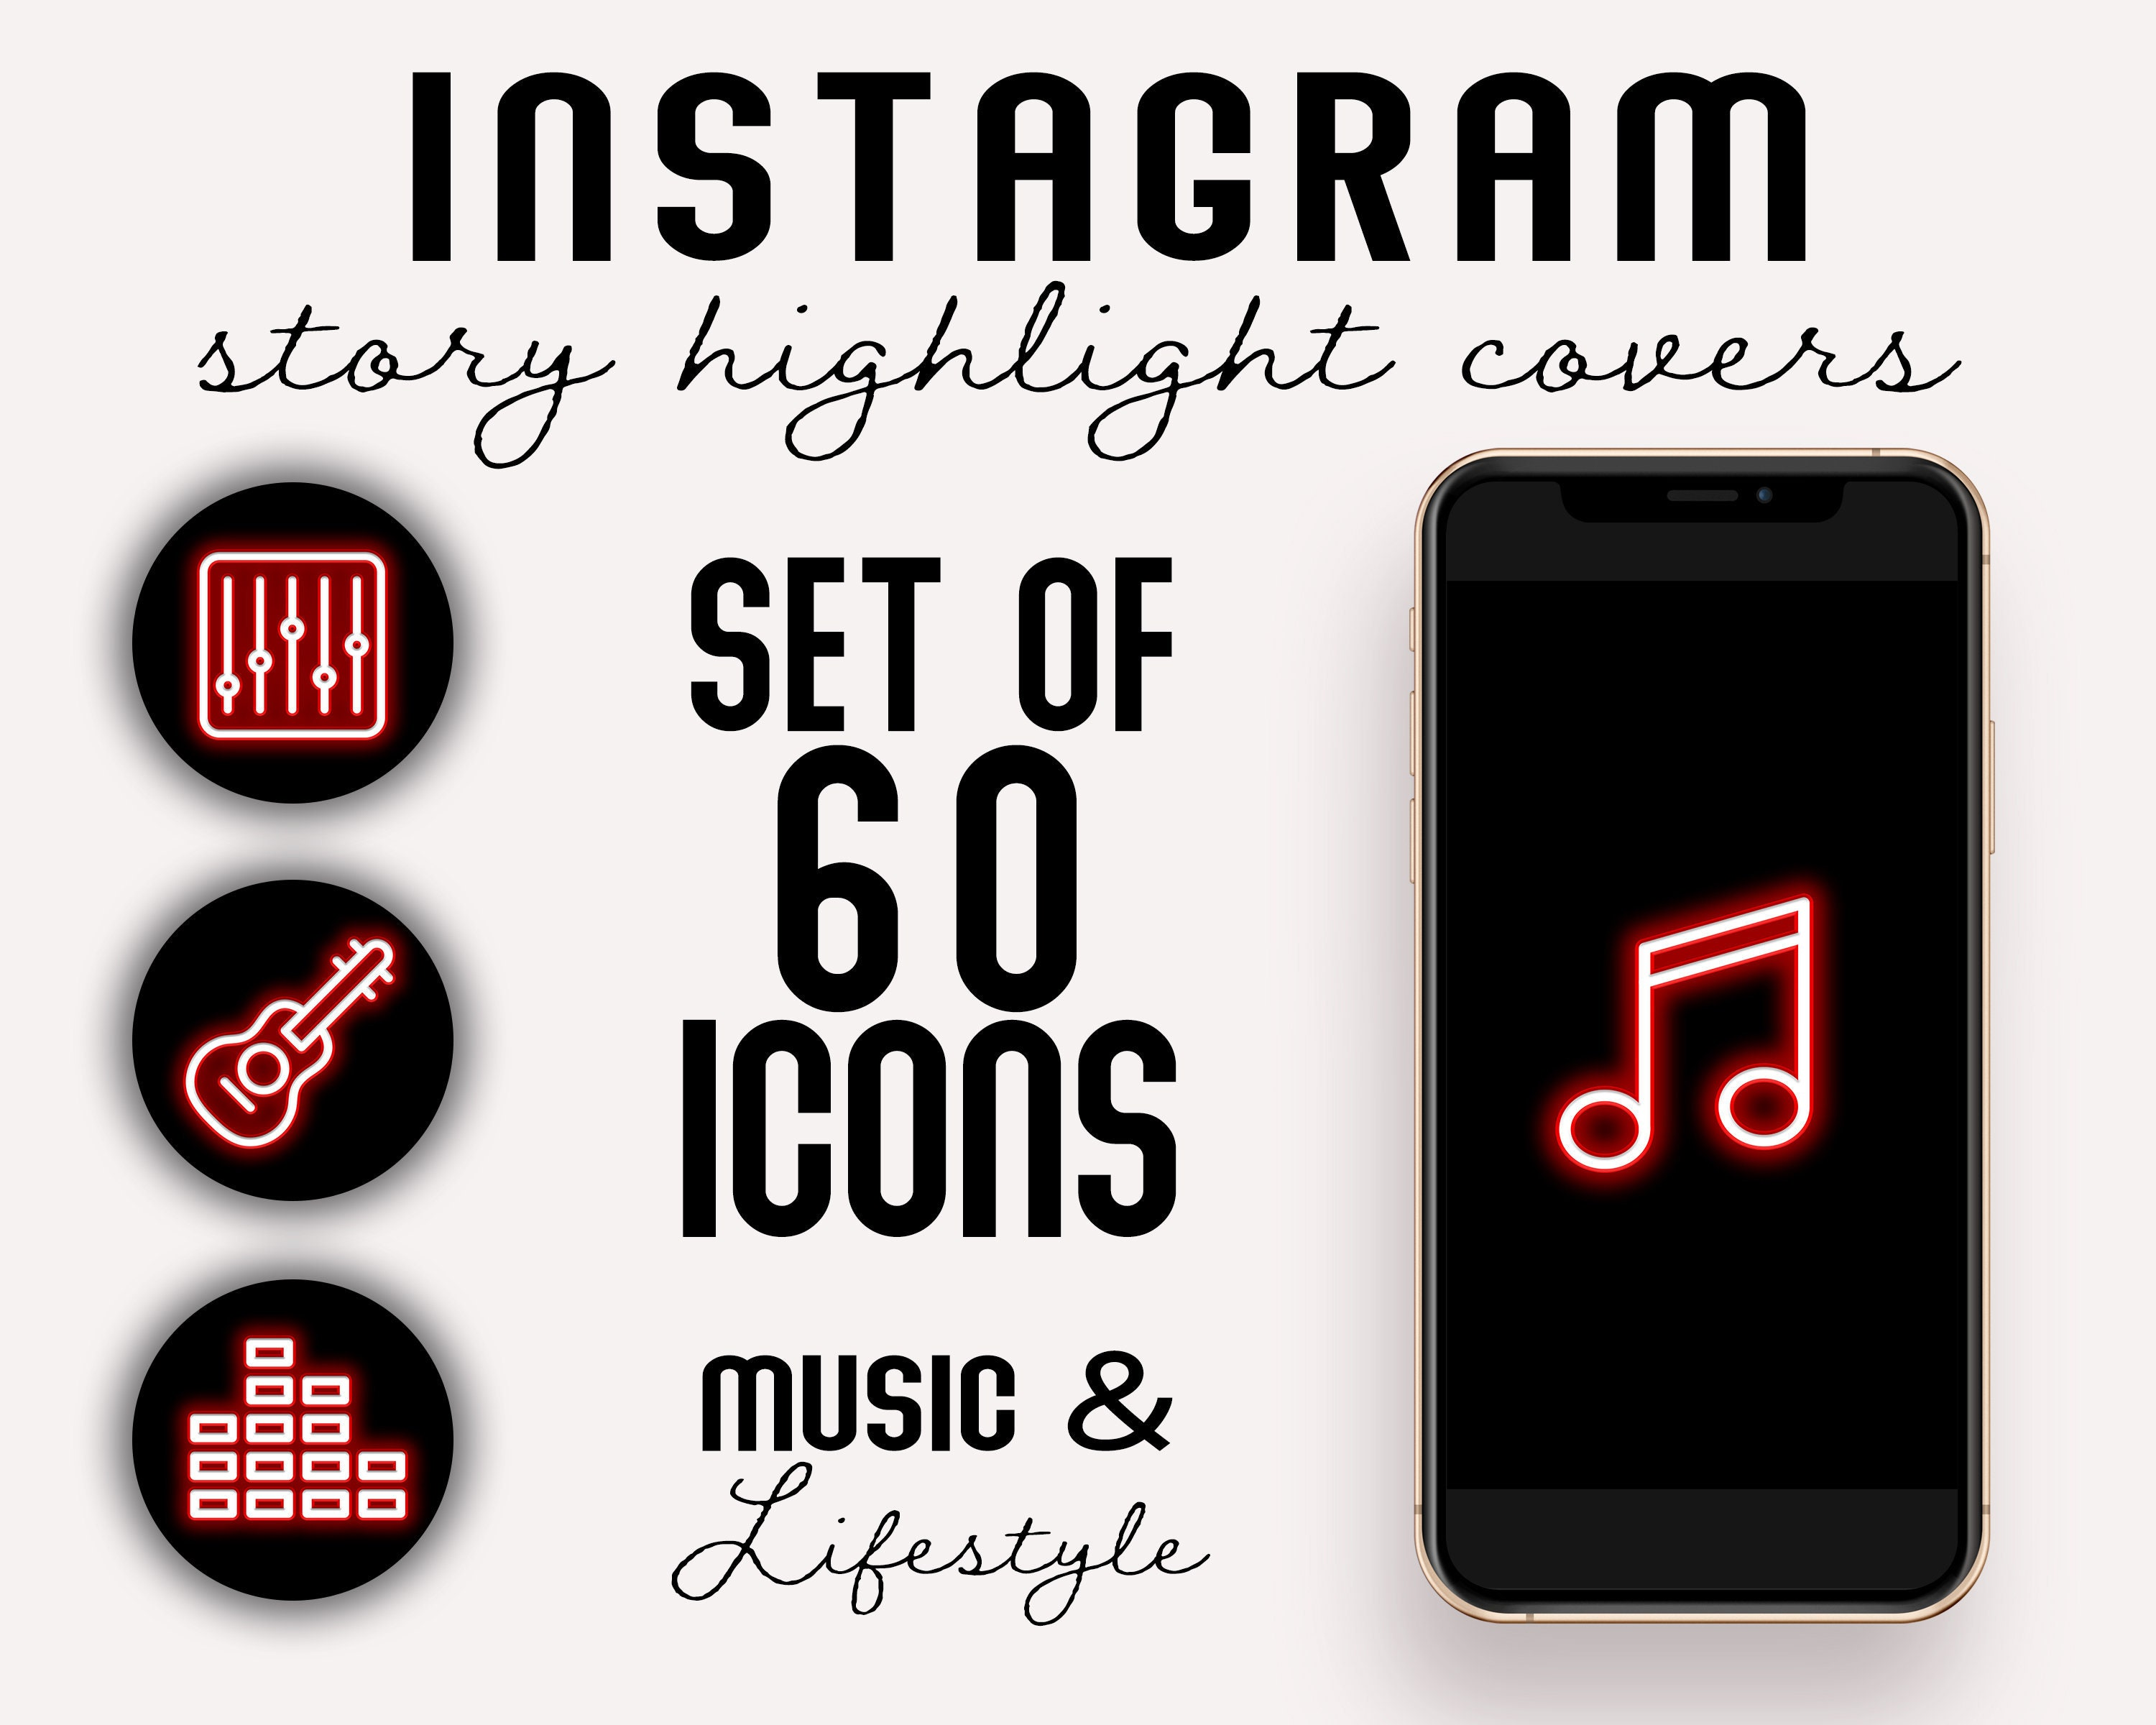 Set Of 60 Neon Red Music Artist Instagram Story Highlight Covers